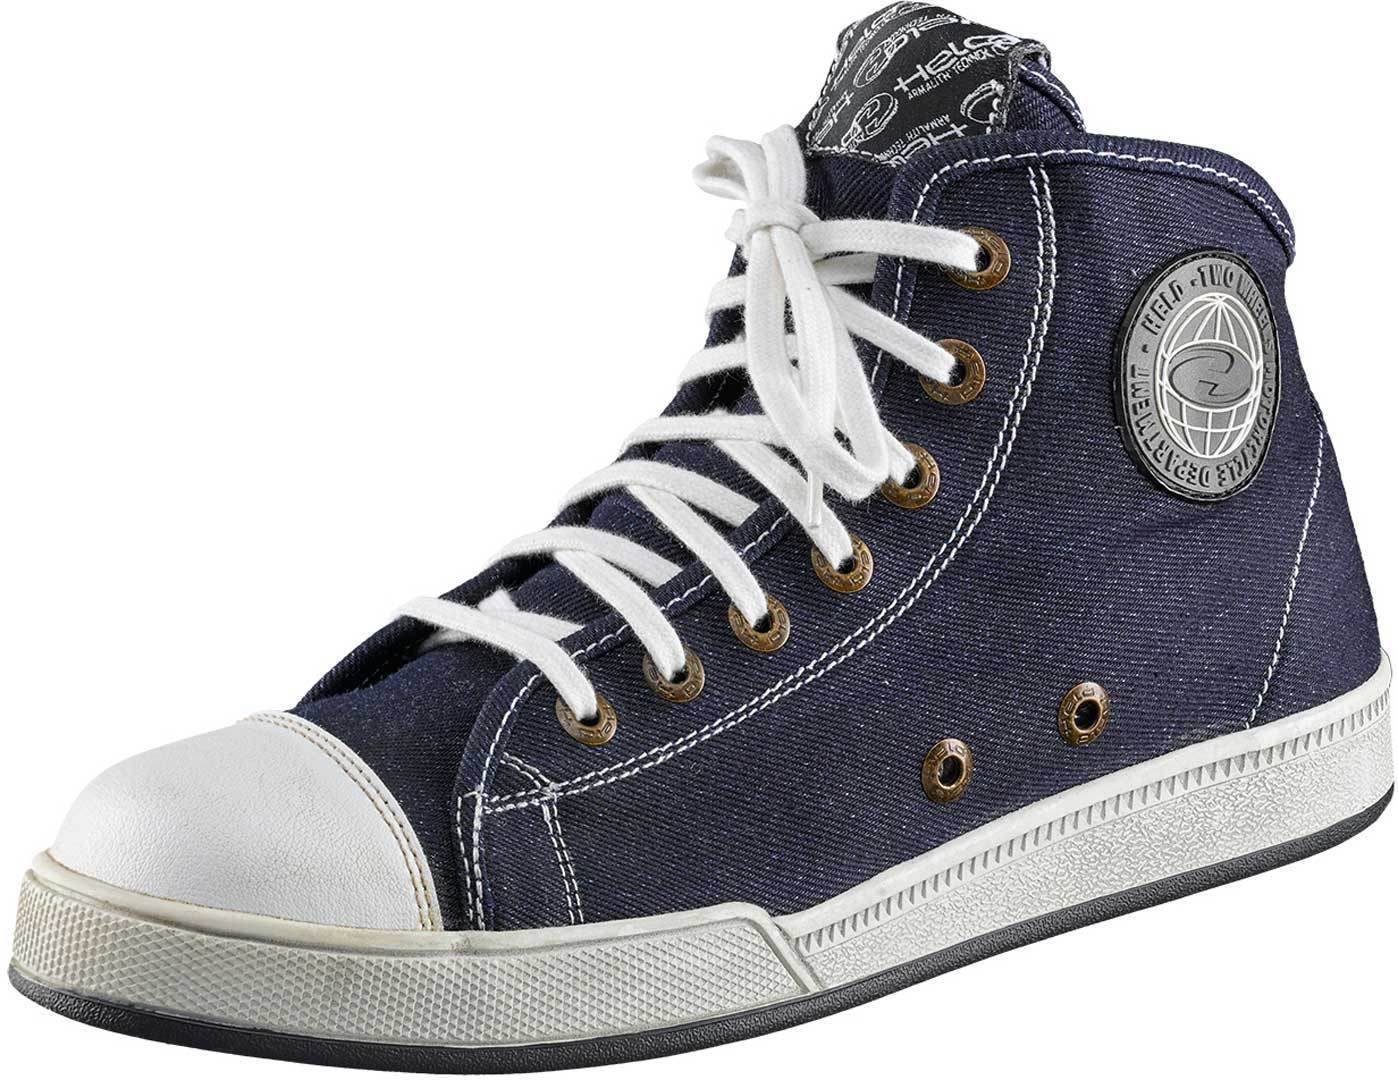 Held Terence Motorcycle Shoes Blue 38